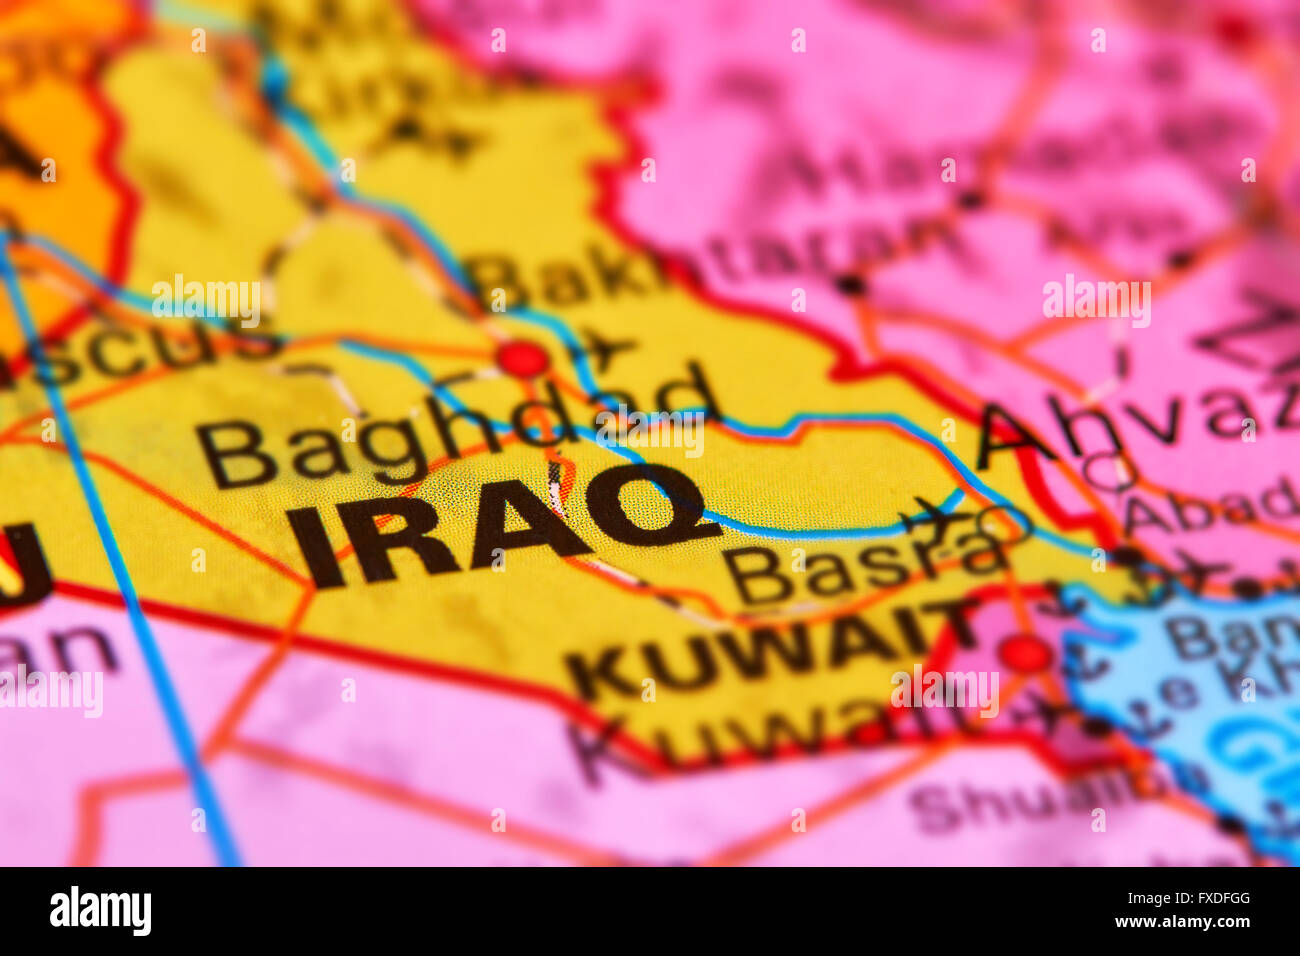 Iraq country in the middle east on the world map stock photo iraq country in the middle east on the world map gumiabroncs Choice Image